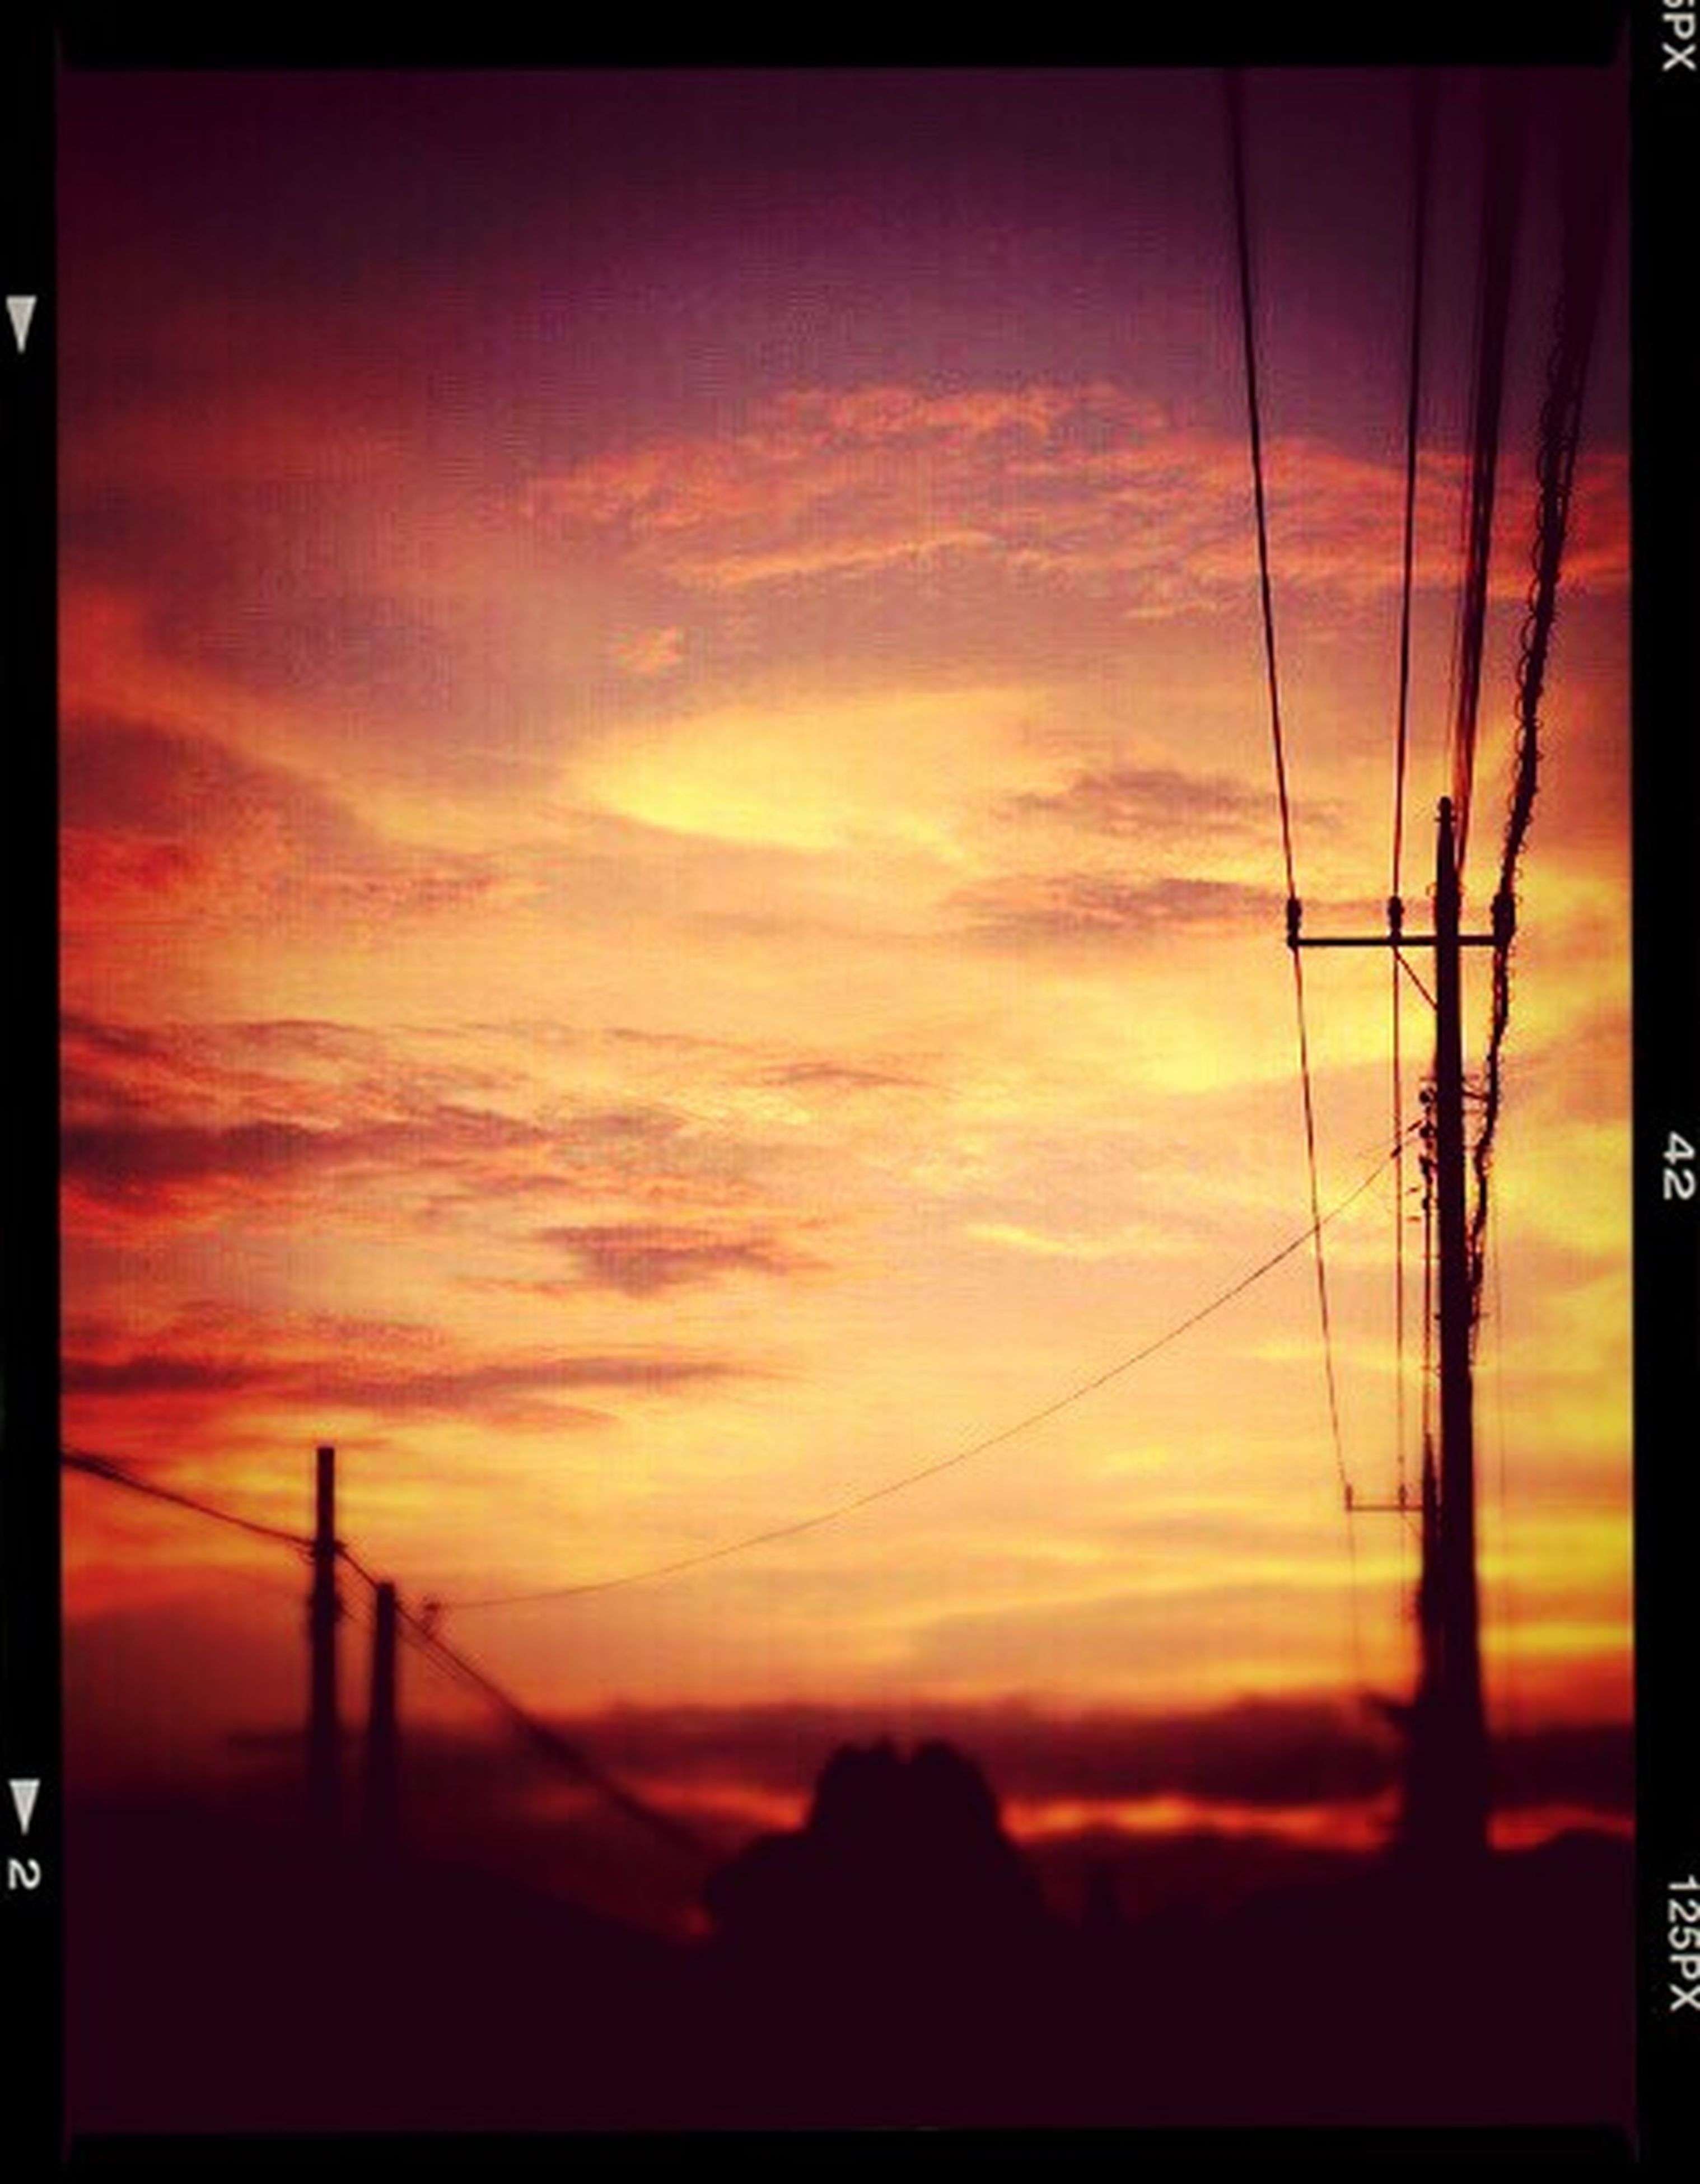 sunset, silhouette, power line, sky, electricity pylon, power supply, orange color, transfer print, connection, low angle view, electricity, built structure, fuel and power generation, architecture, building exterior, cloud - sky, auto post production filter, technology, cable, dusk